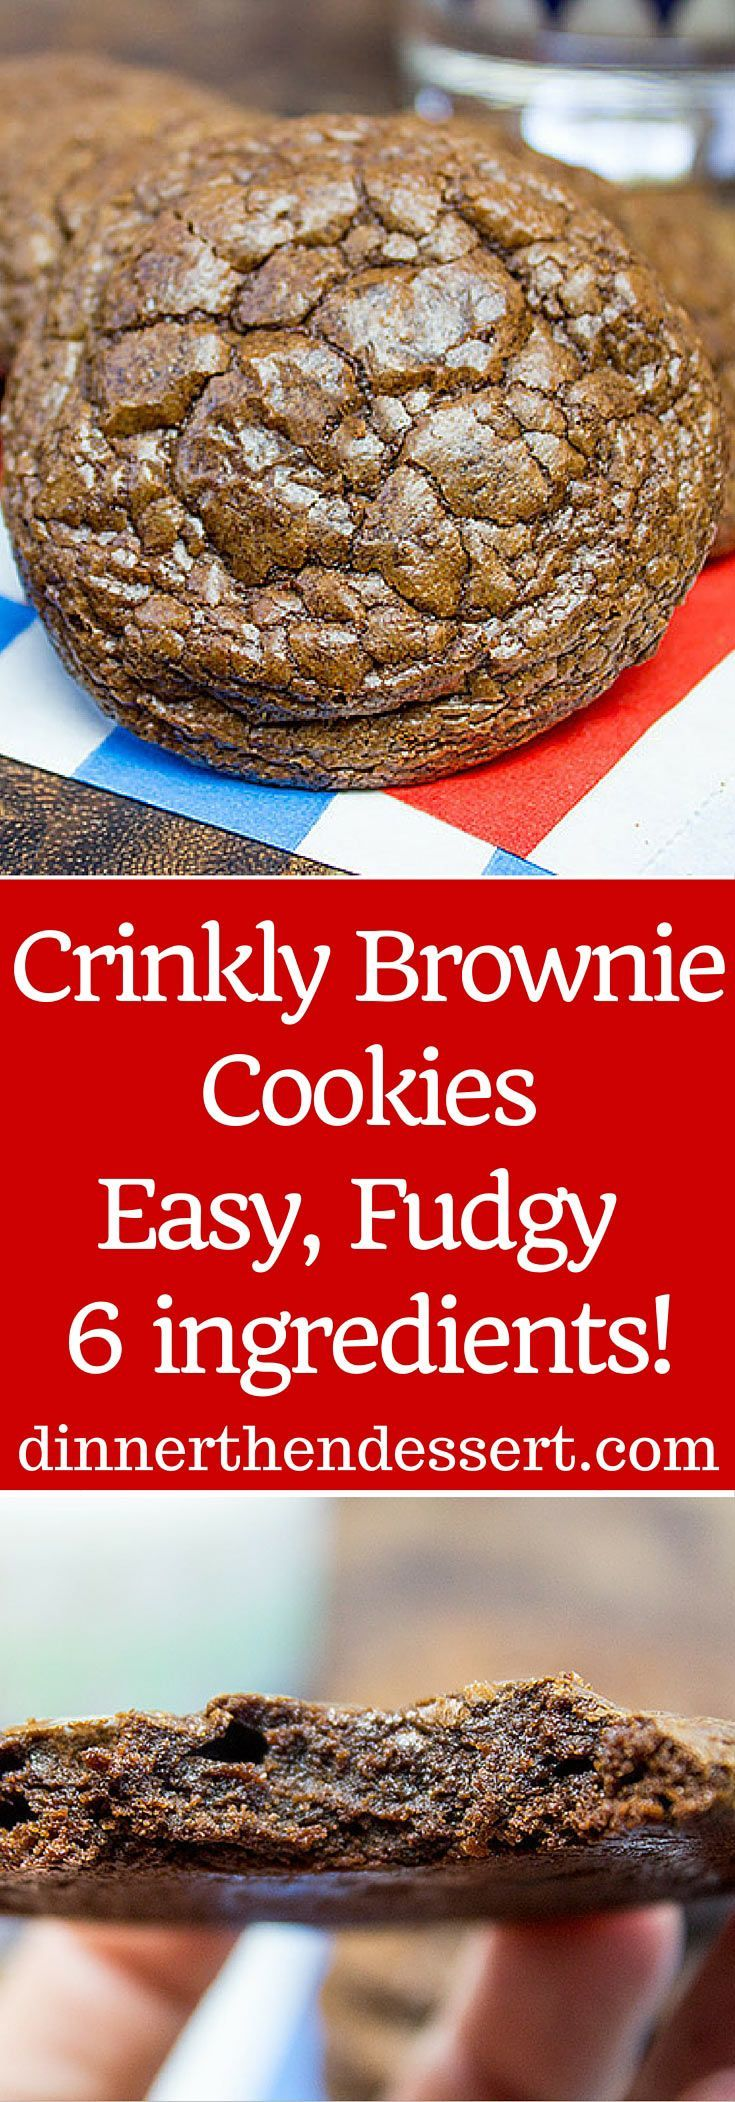 Don't be fooled by the fact that they only have 6 ingredients, these Crinkly Brownie Cookies are rich, fudgy and totally addicting!